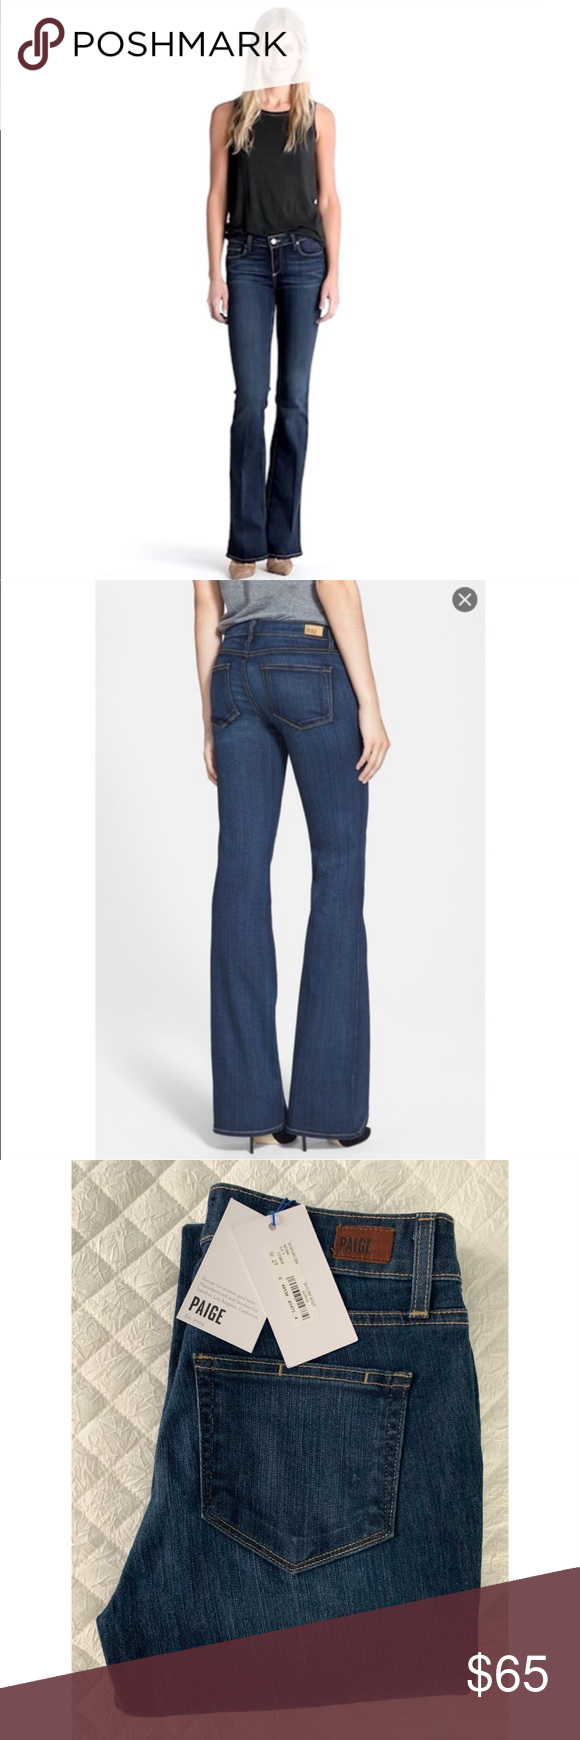 """d7814300e53 NWT $169 Paige Skyline Bootcut Jeans Paige Skyline Bootcut Jeans in """"Sonya""""  wash."""